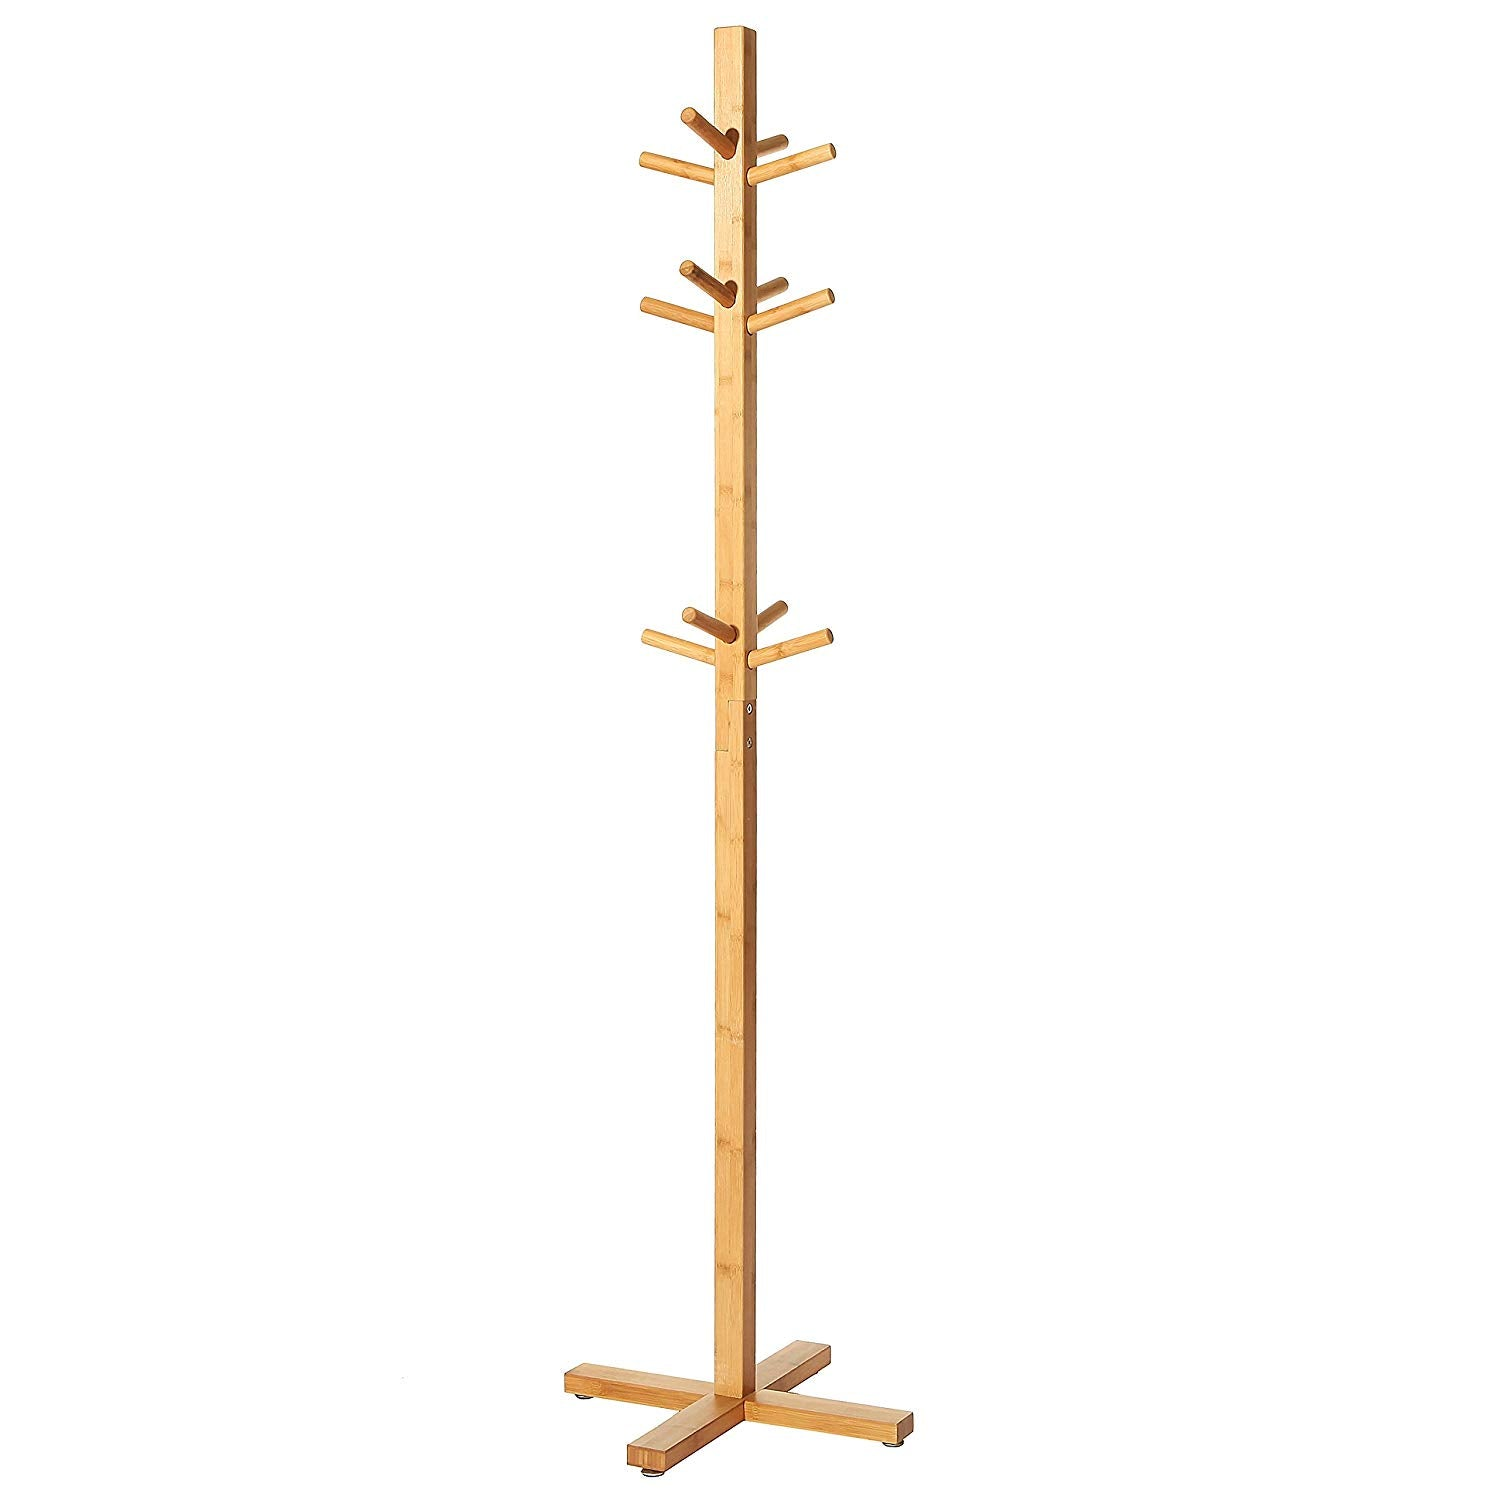 Freestanding Entryway Bamboo Wood 12 Hook Garment / Tree Rack / Hallway Coat & Hat Stand